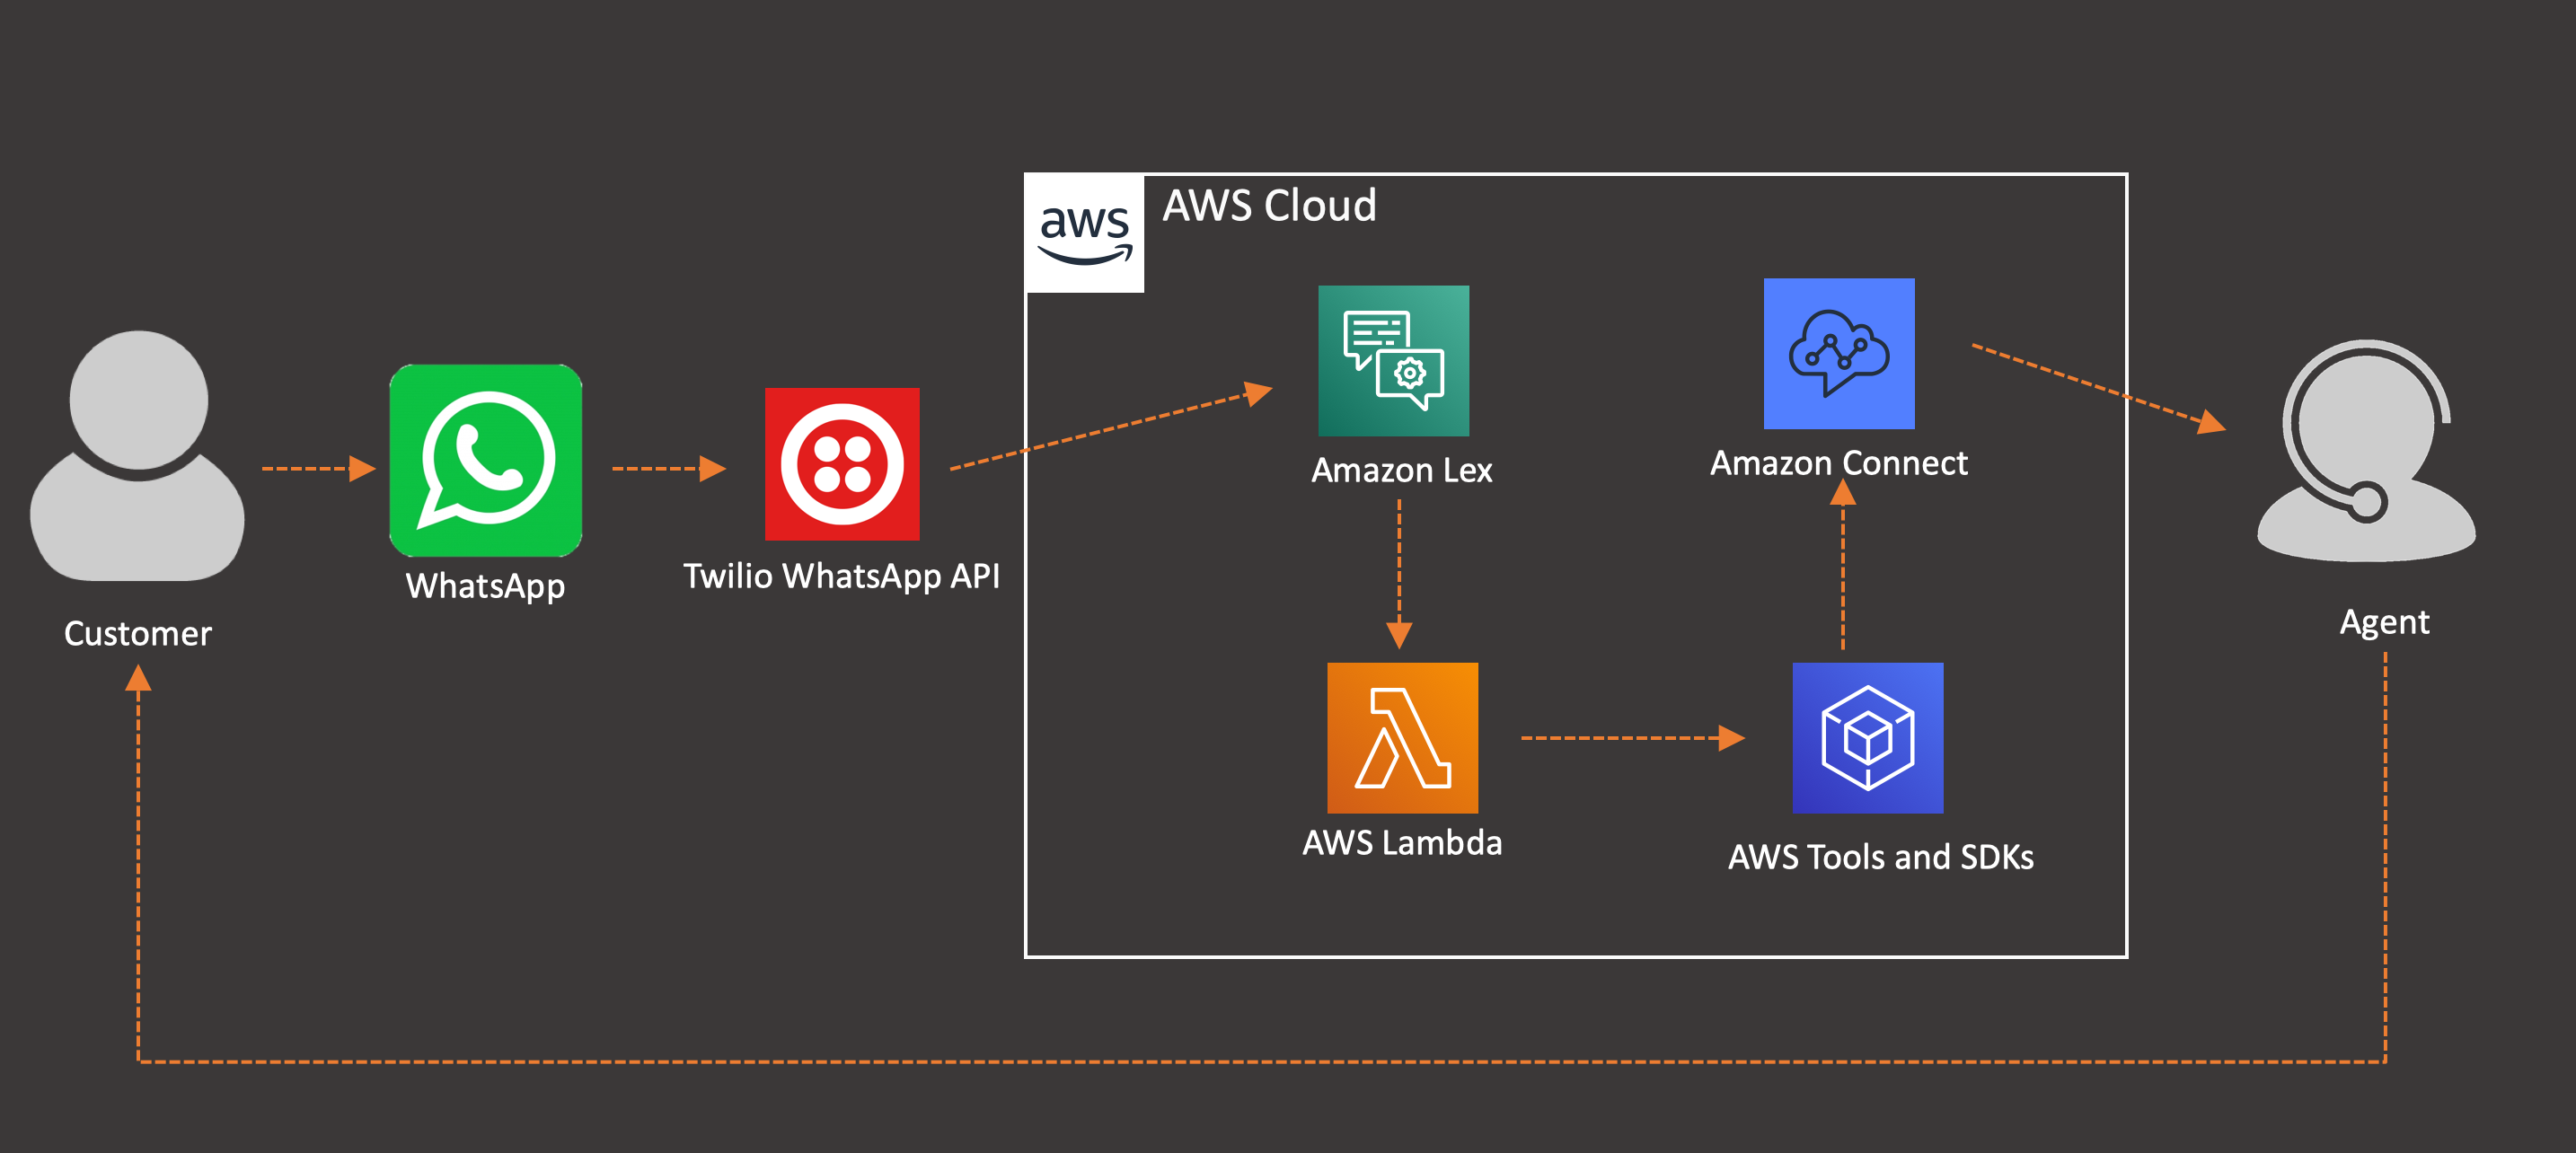 Using Whatsapp And Amazon Lex To Escalate To Voice Via Amazon Connect Aws Contact Center